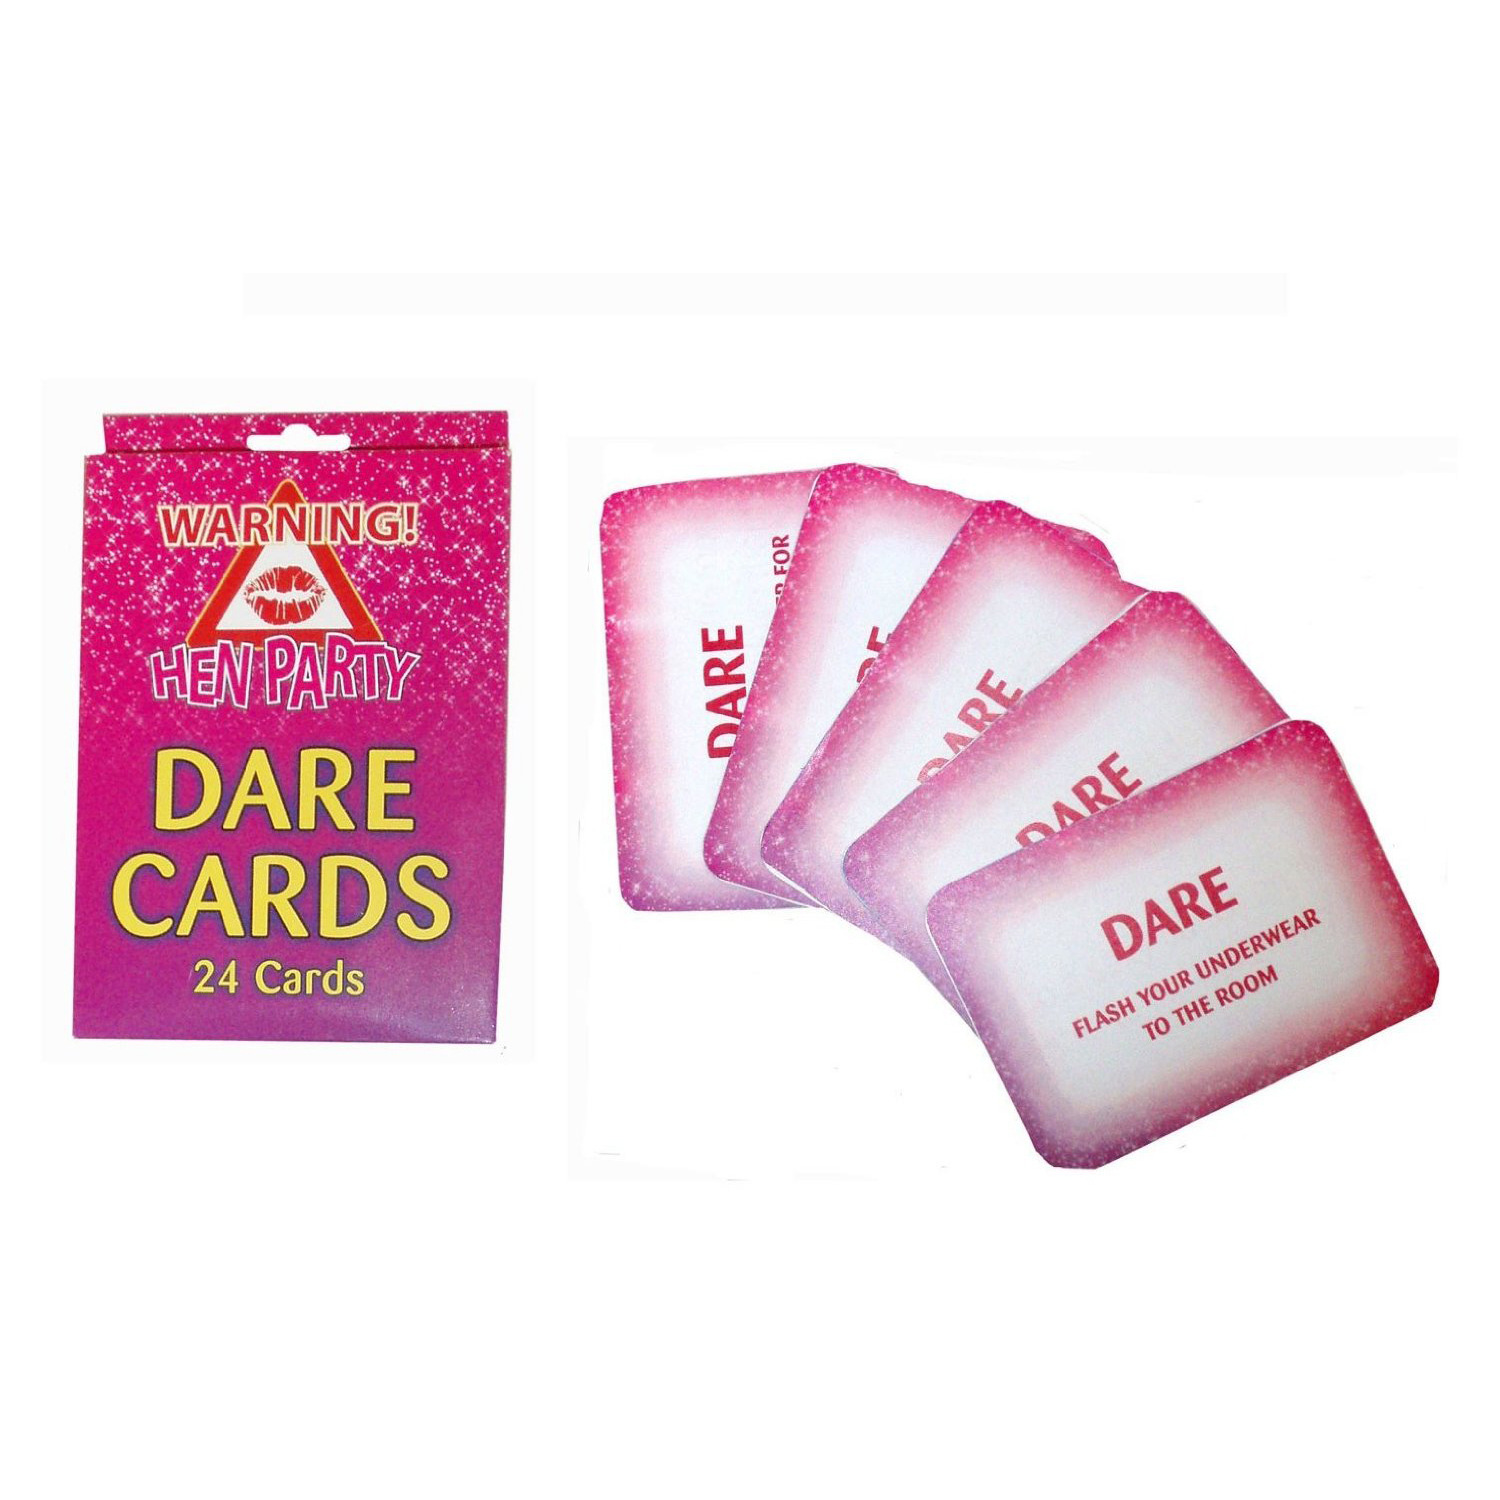 24 x Dare Cards in a box Hen Party Game